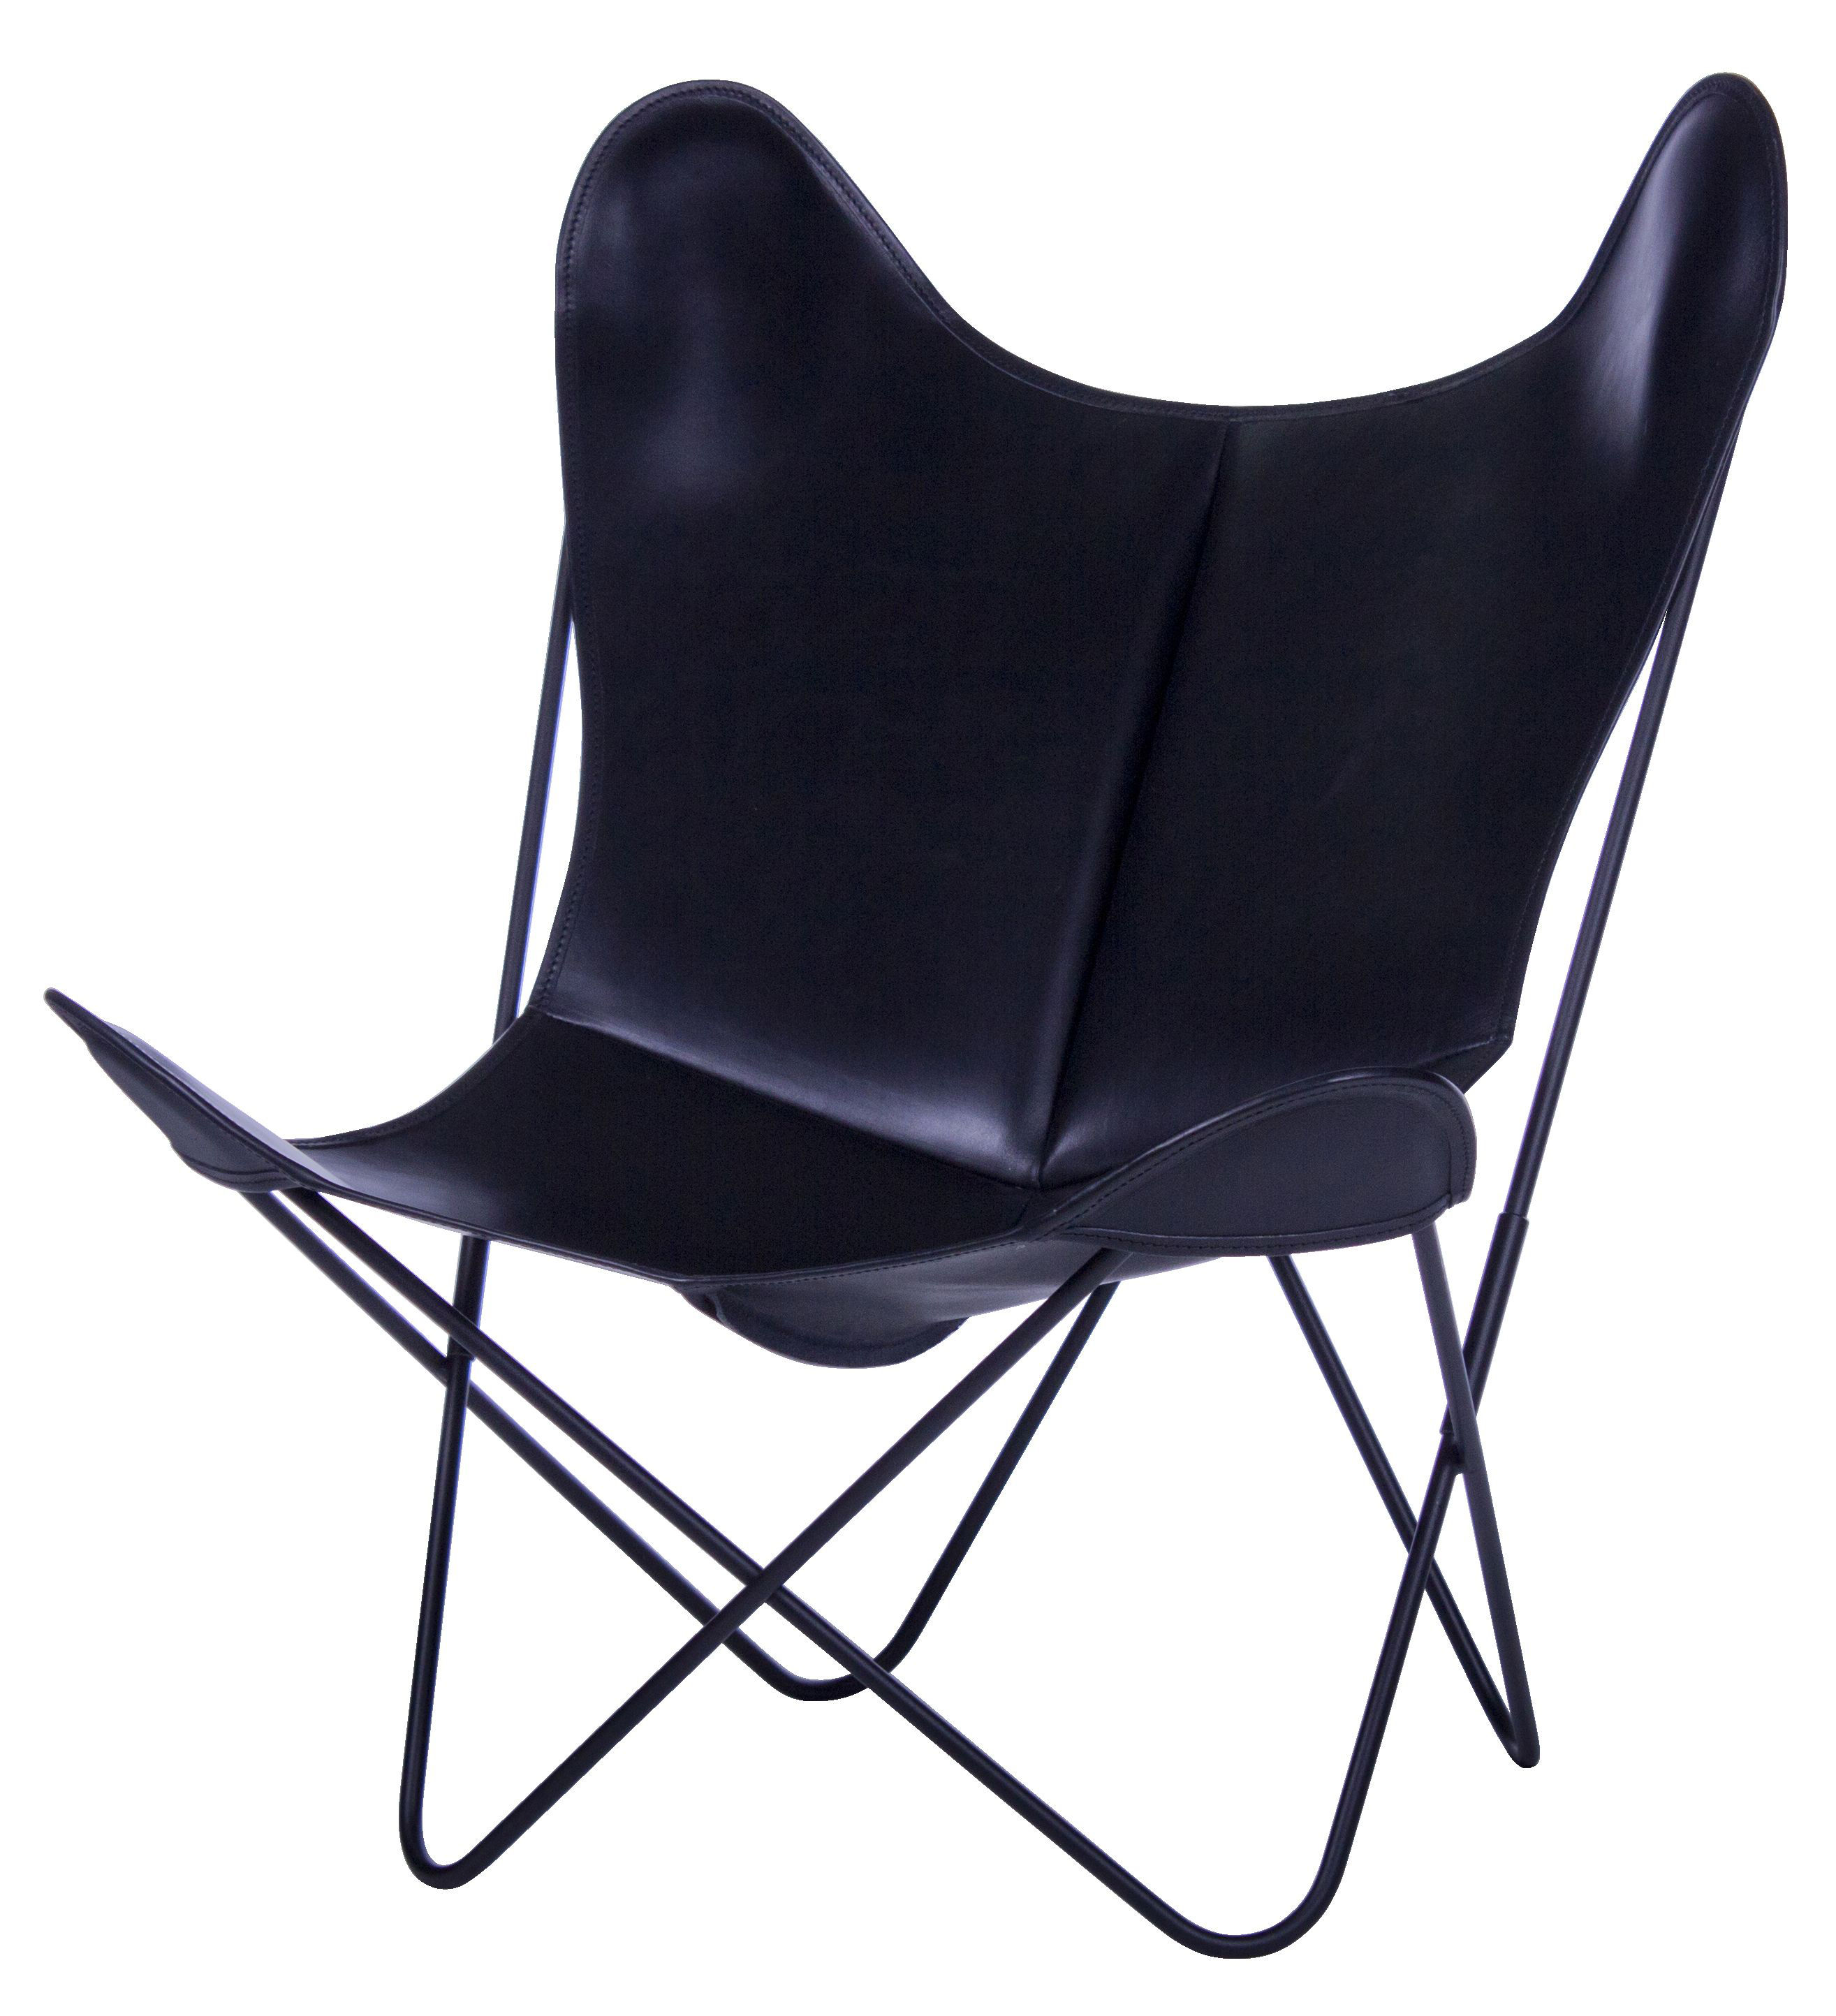 Fauteuil aa butterfly cuir structure noire structure noire cuir noir aa - Fauteuil made in design ...